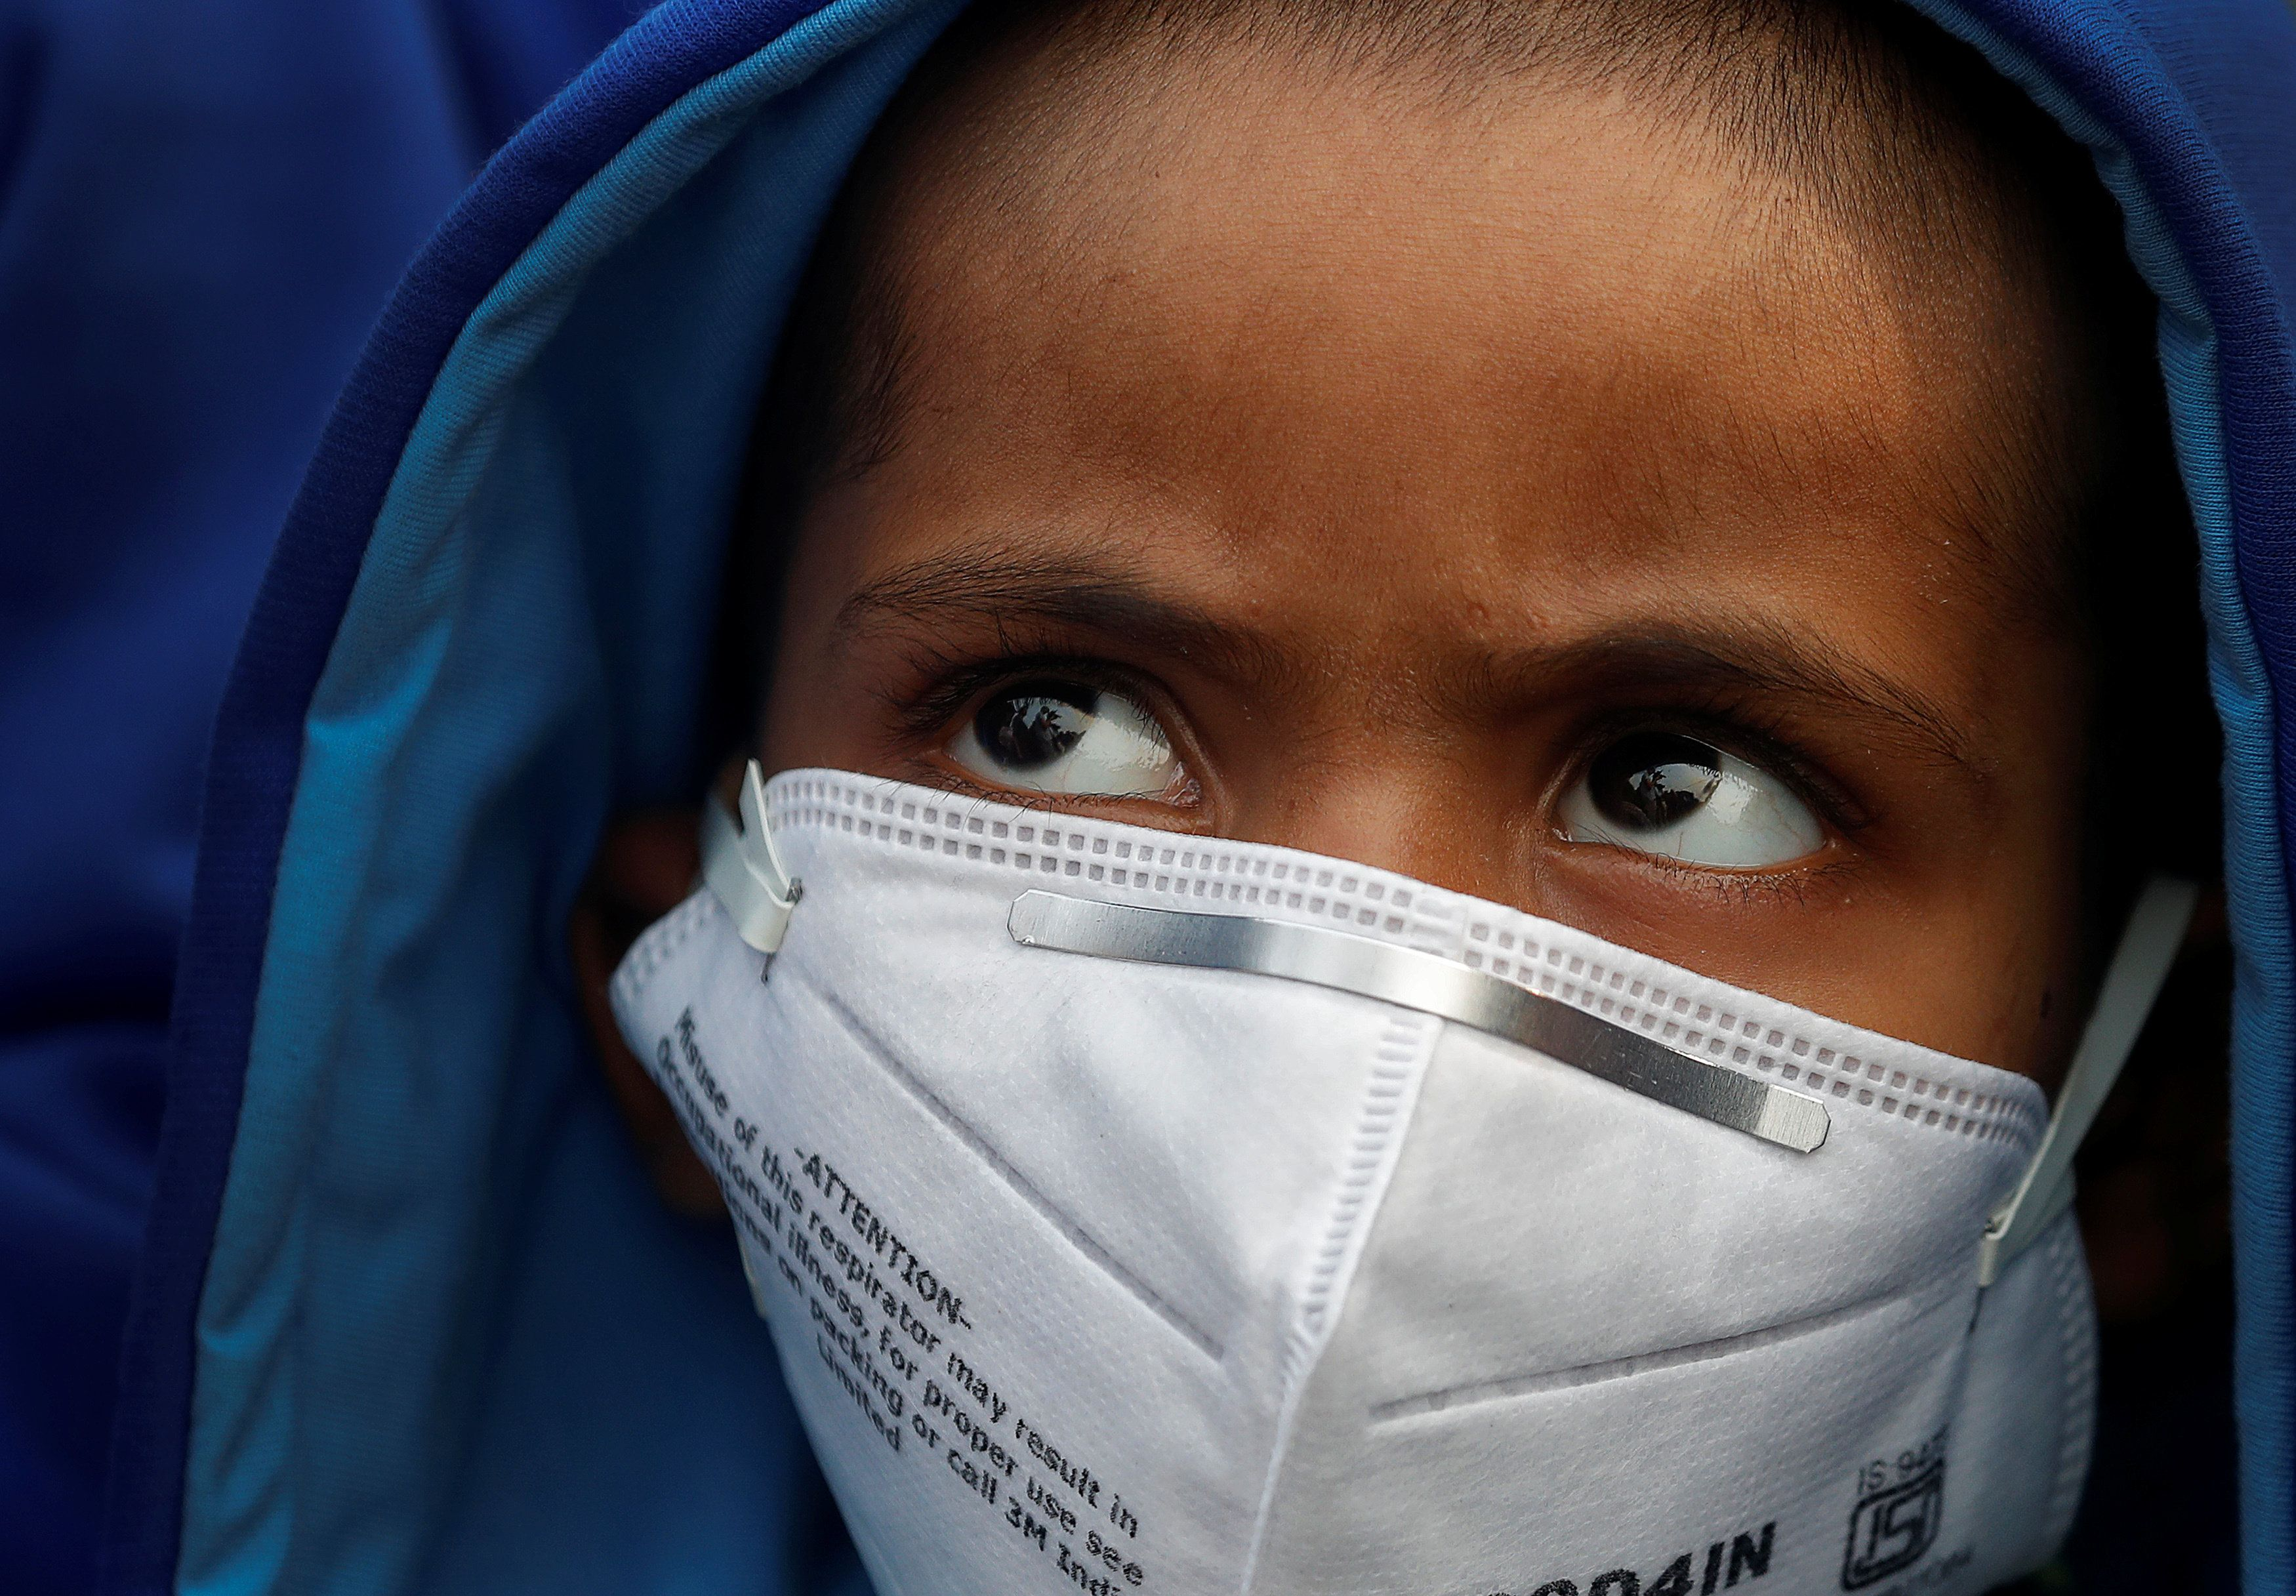 A child wears a face mask for protection from air pollution in Delhi, India November 14, 2017.